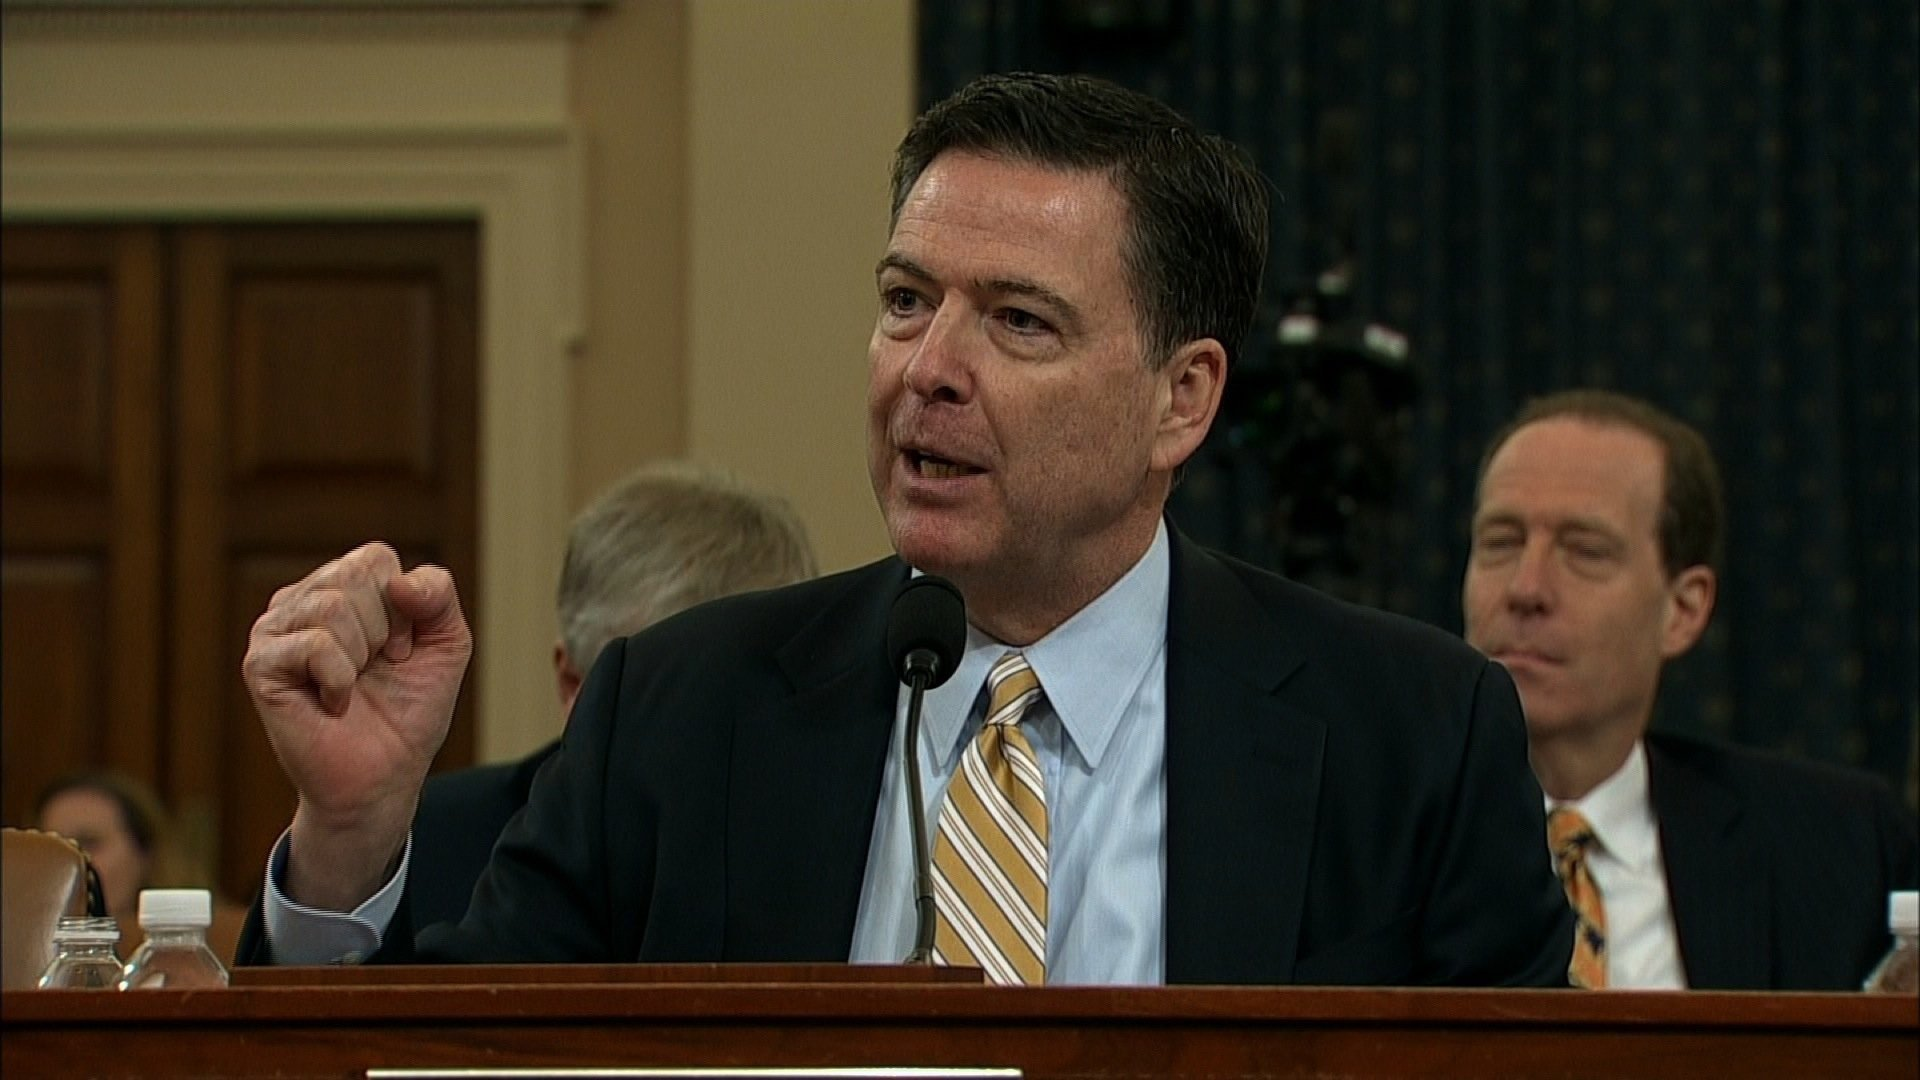 James Comey lets his emo side loose during his testimony